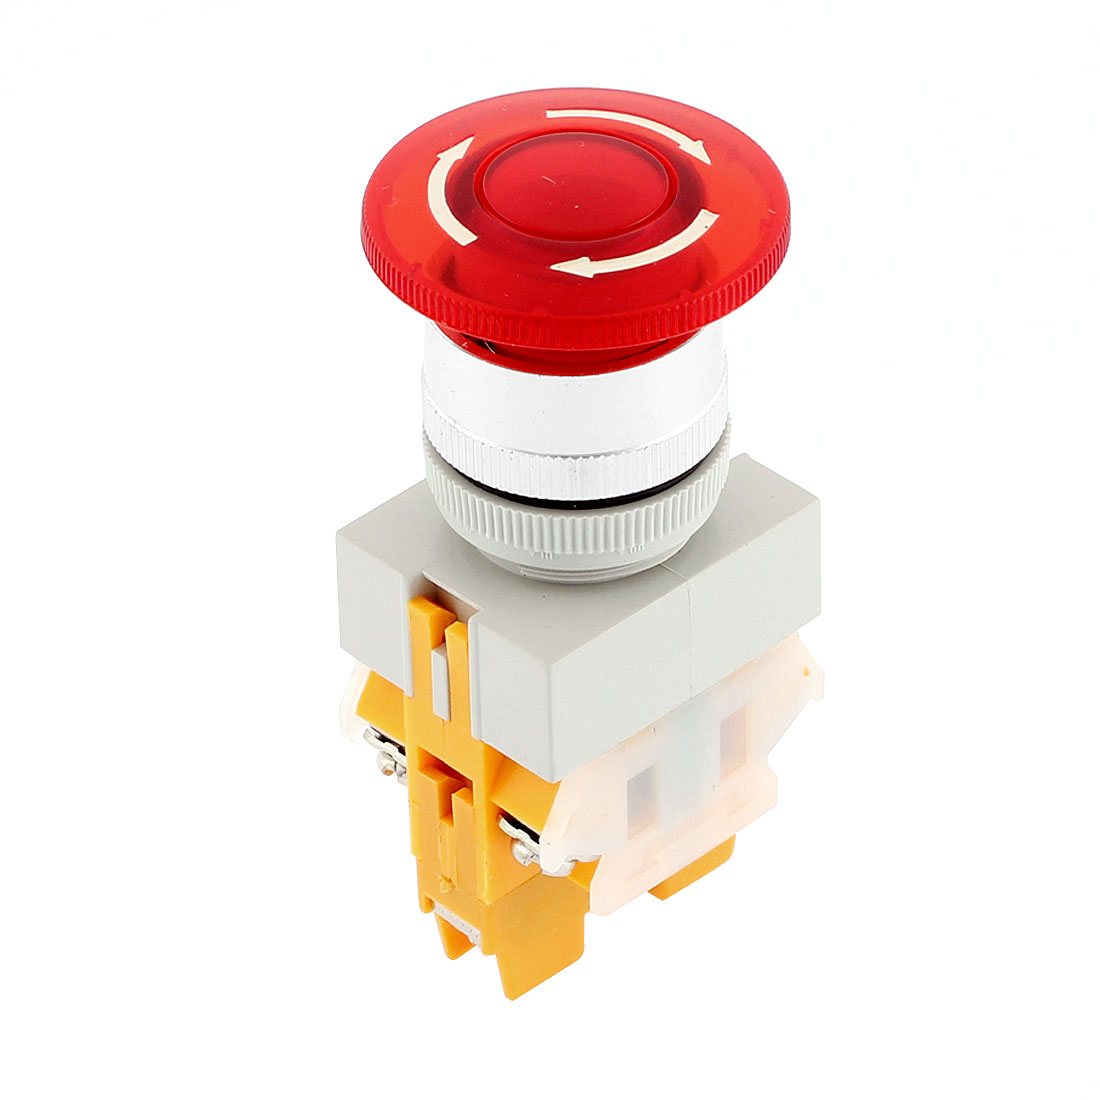 Emergency Stop Latching Red Sign Push Button Switch NC SPST 415V 10A